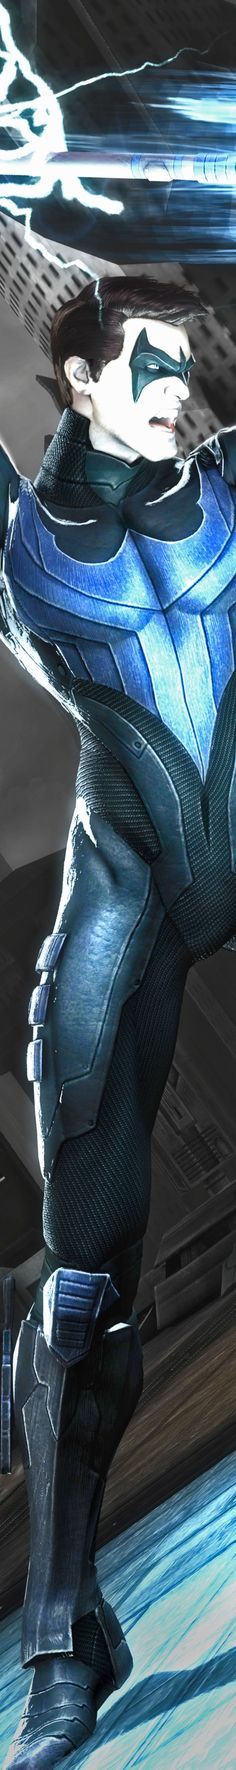 Nightwing | might be an idea for my Halloween costume next year!